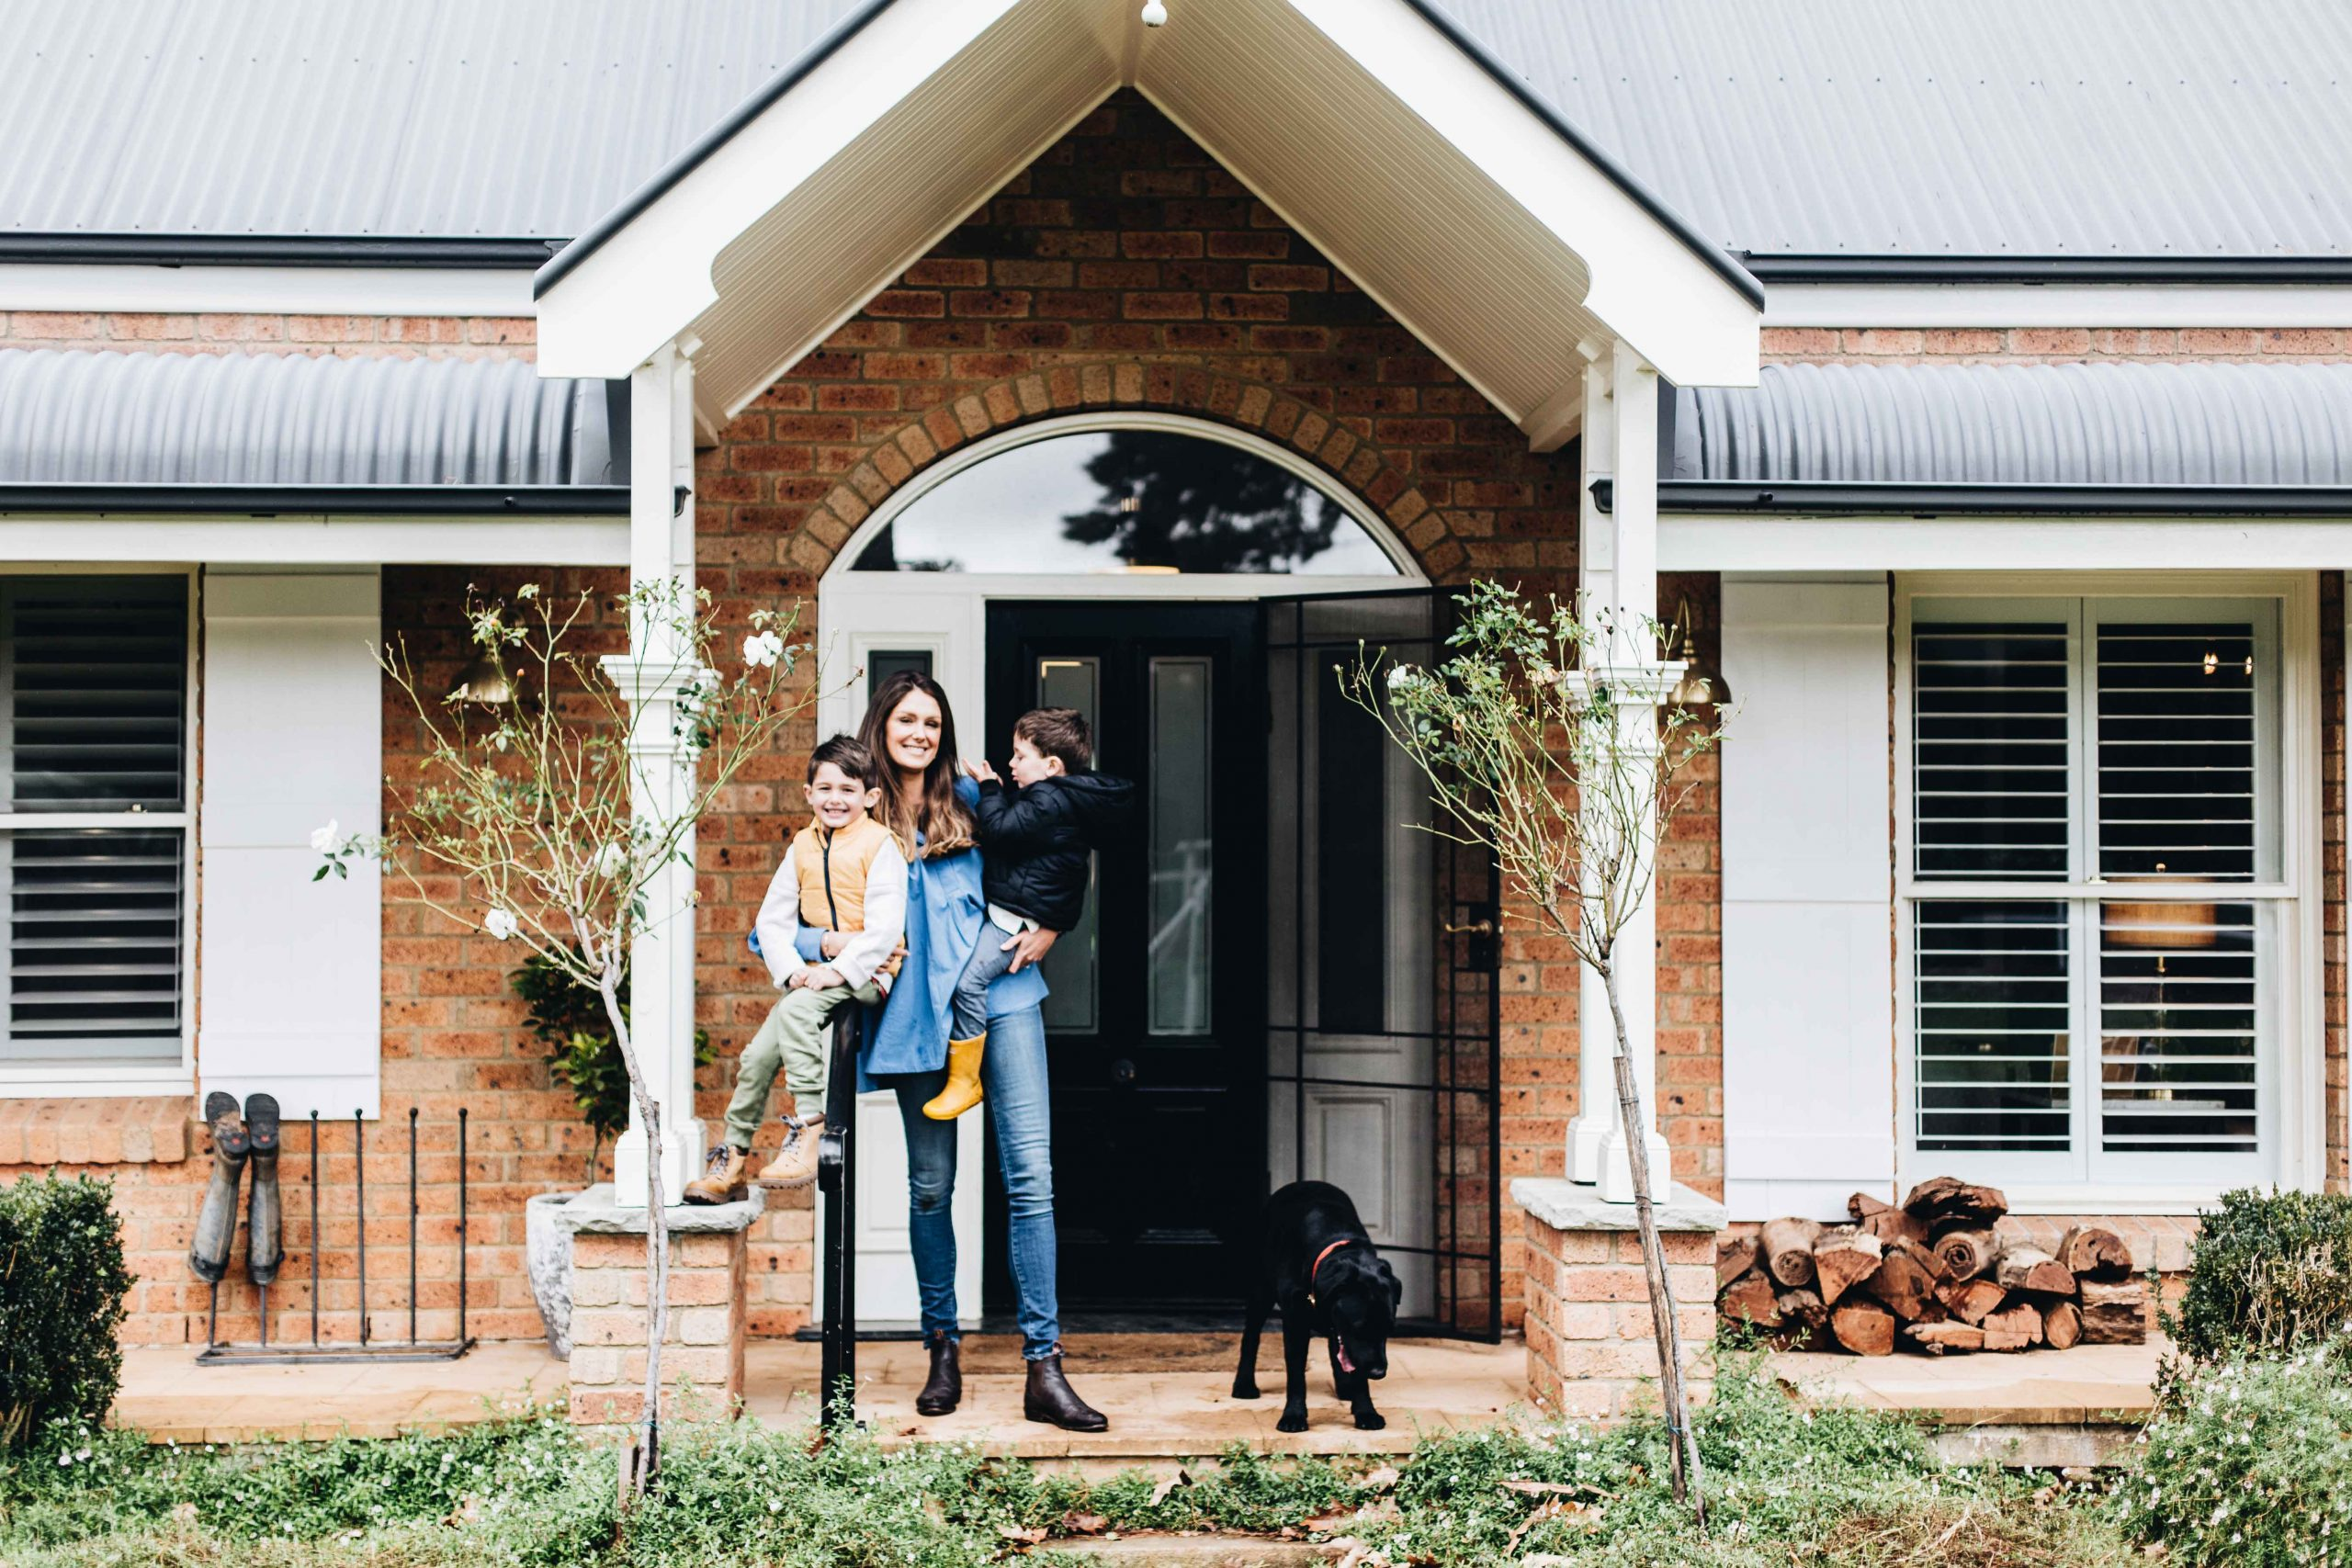 Interior Designer Carlie Philby On Country Living & Dreaming Up The Berrima Vault House